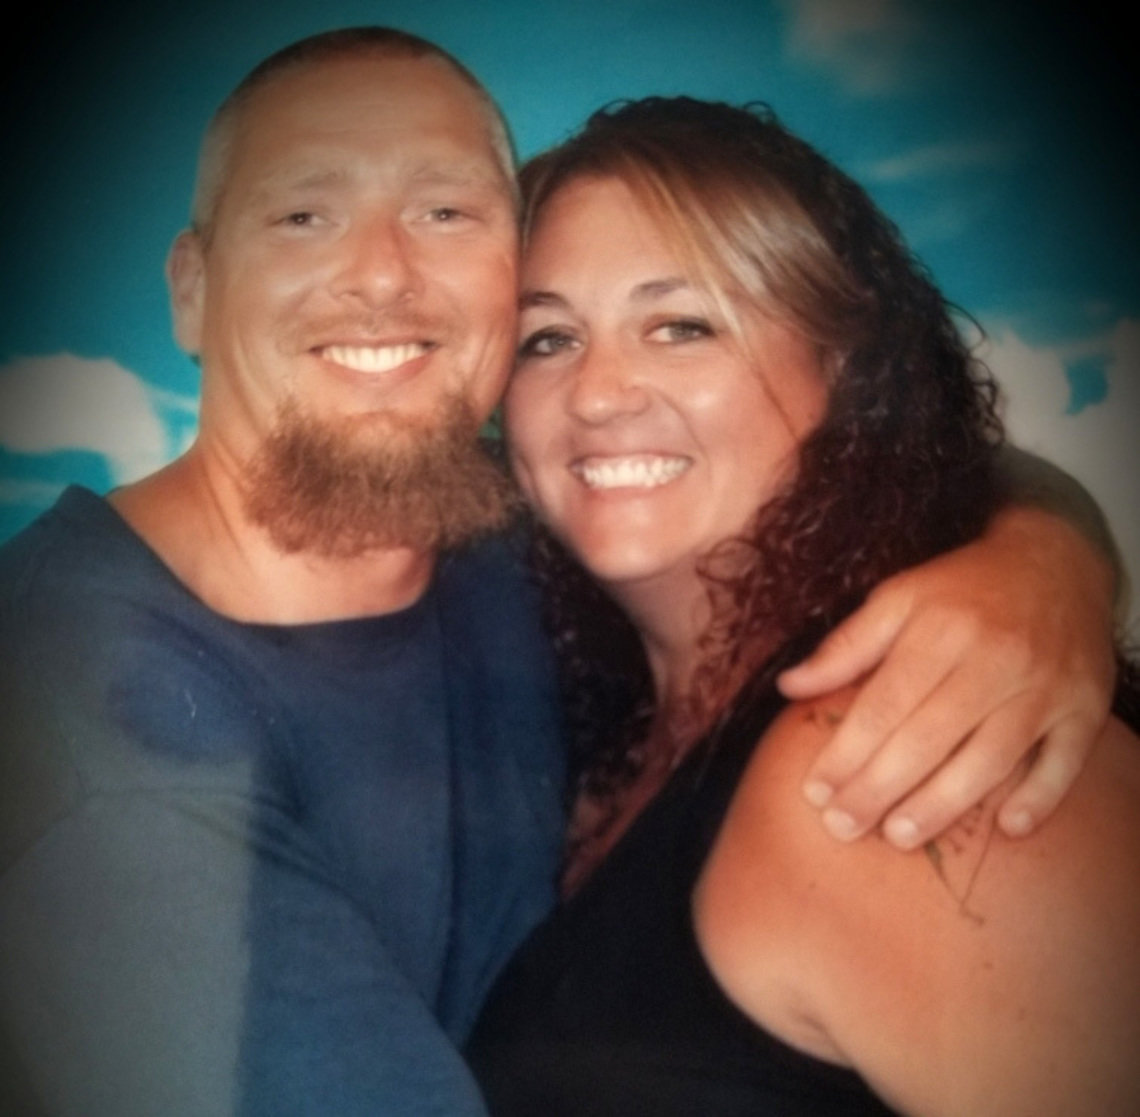 Amy Wallace and her husband, Jerry Wallace, who is incarcerated at Kinross Correctional Facility in Michigan.